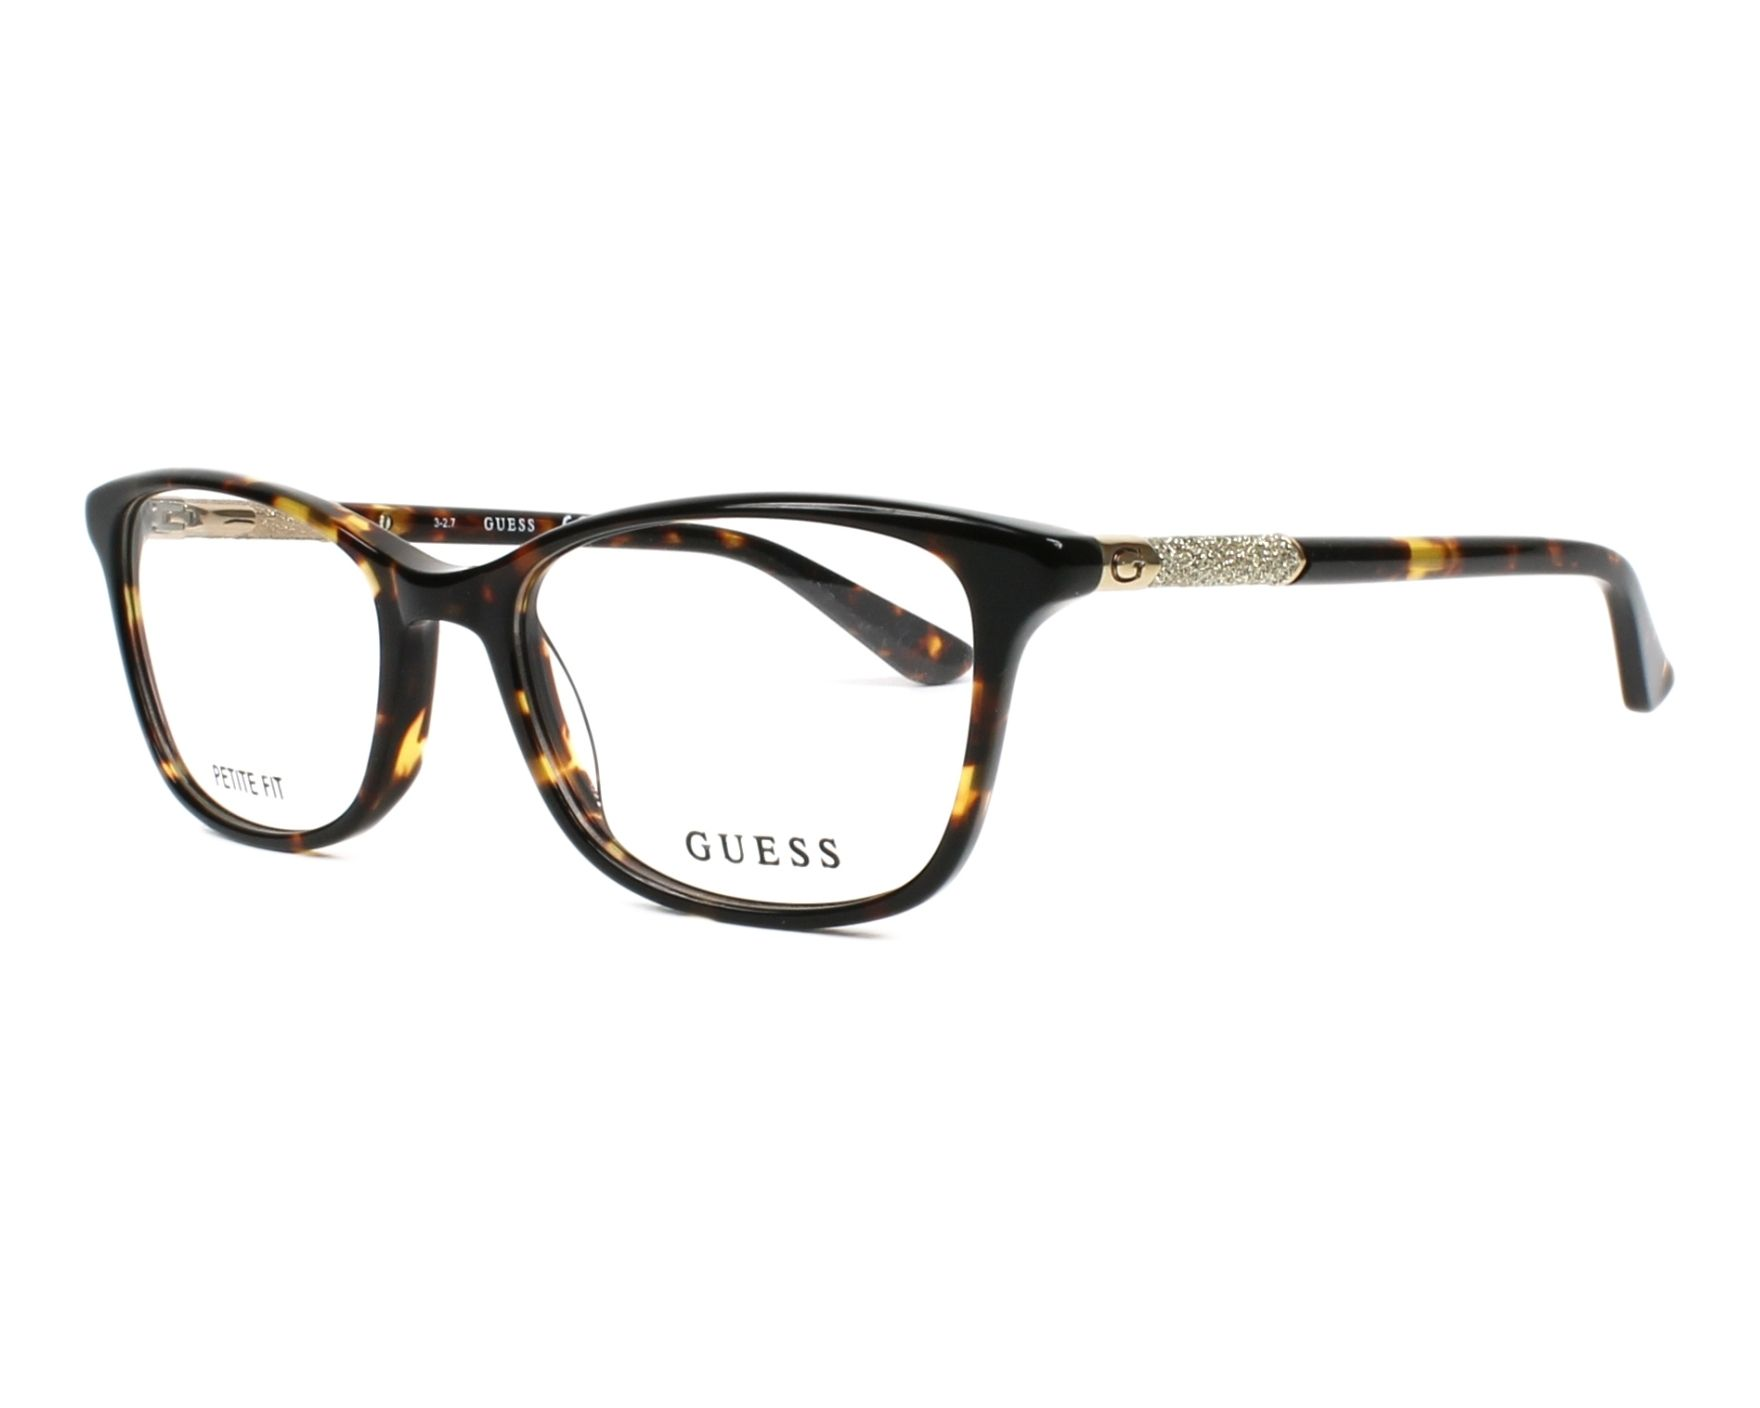 6e4a5448d0 Guess Glasses Made In